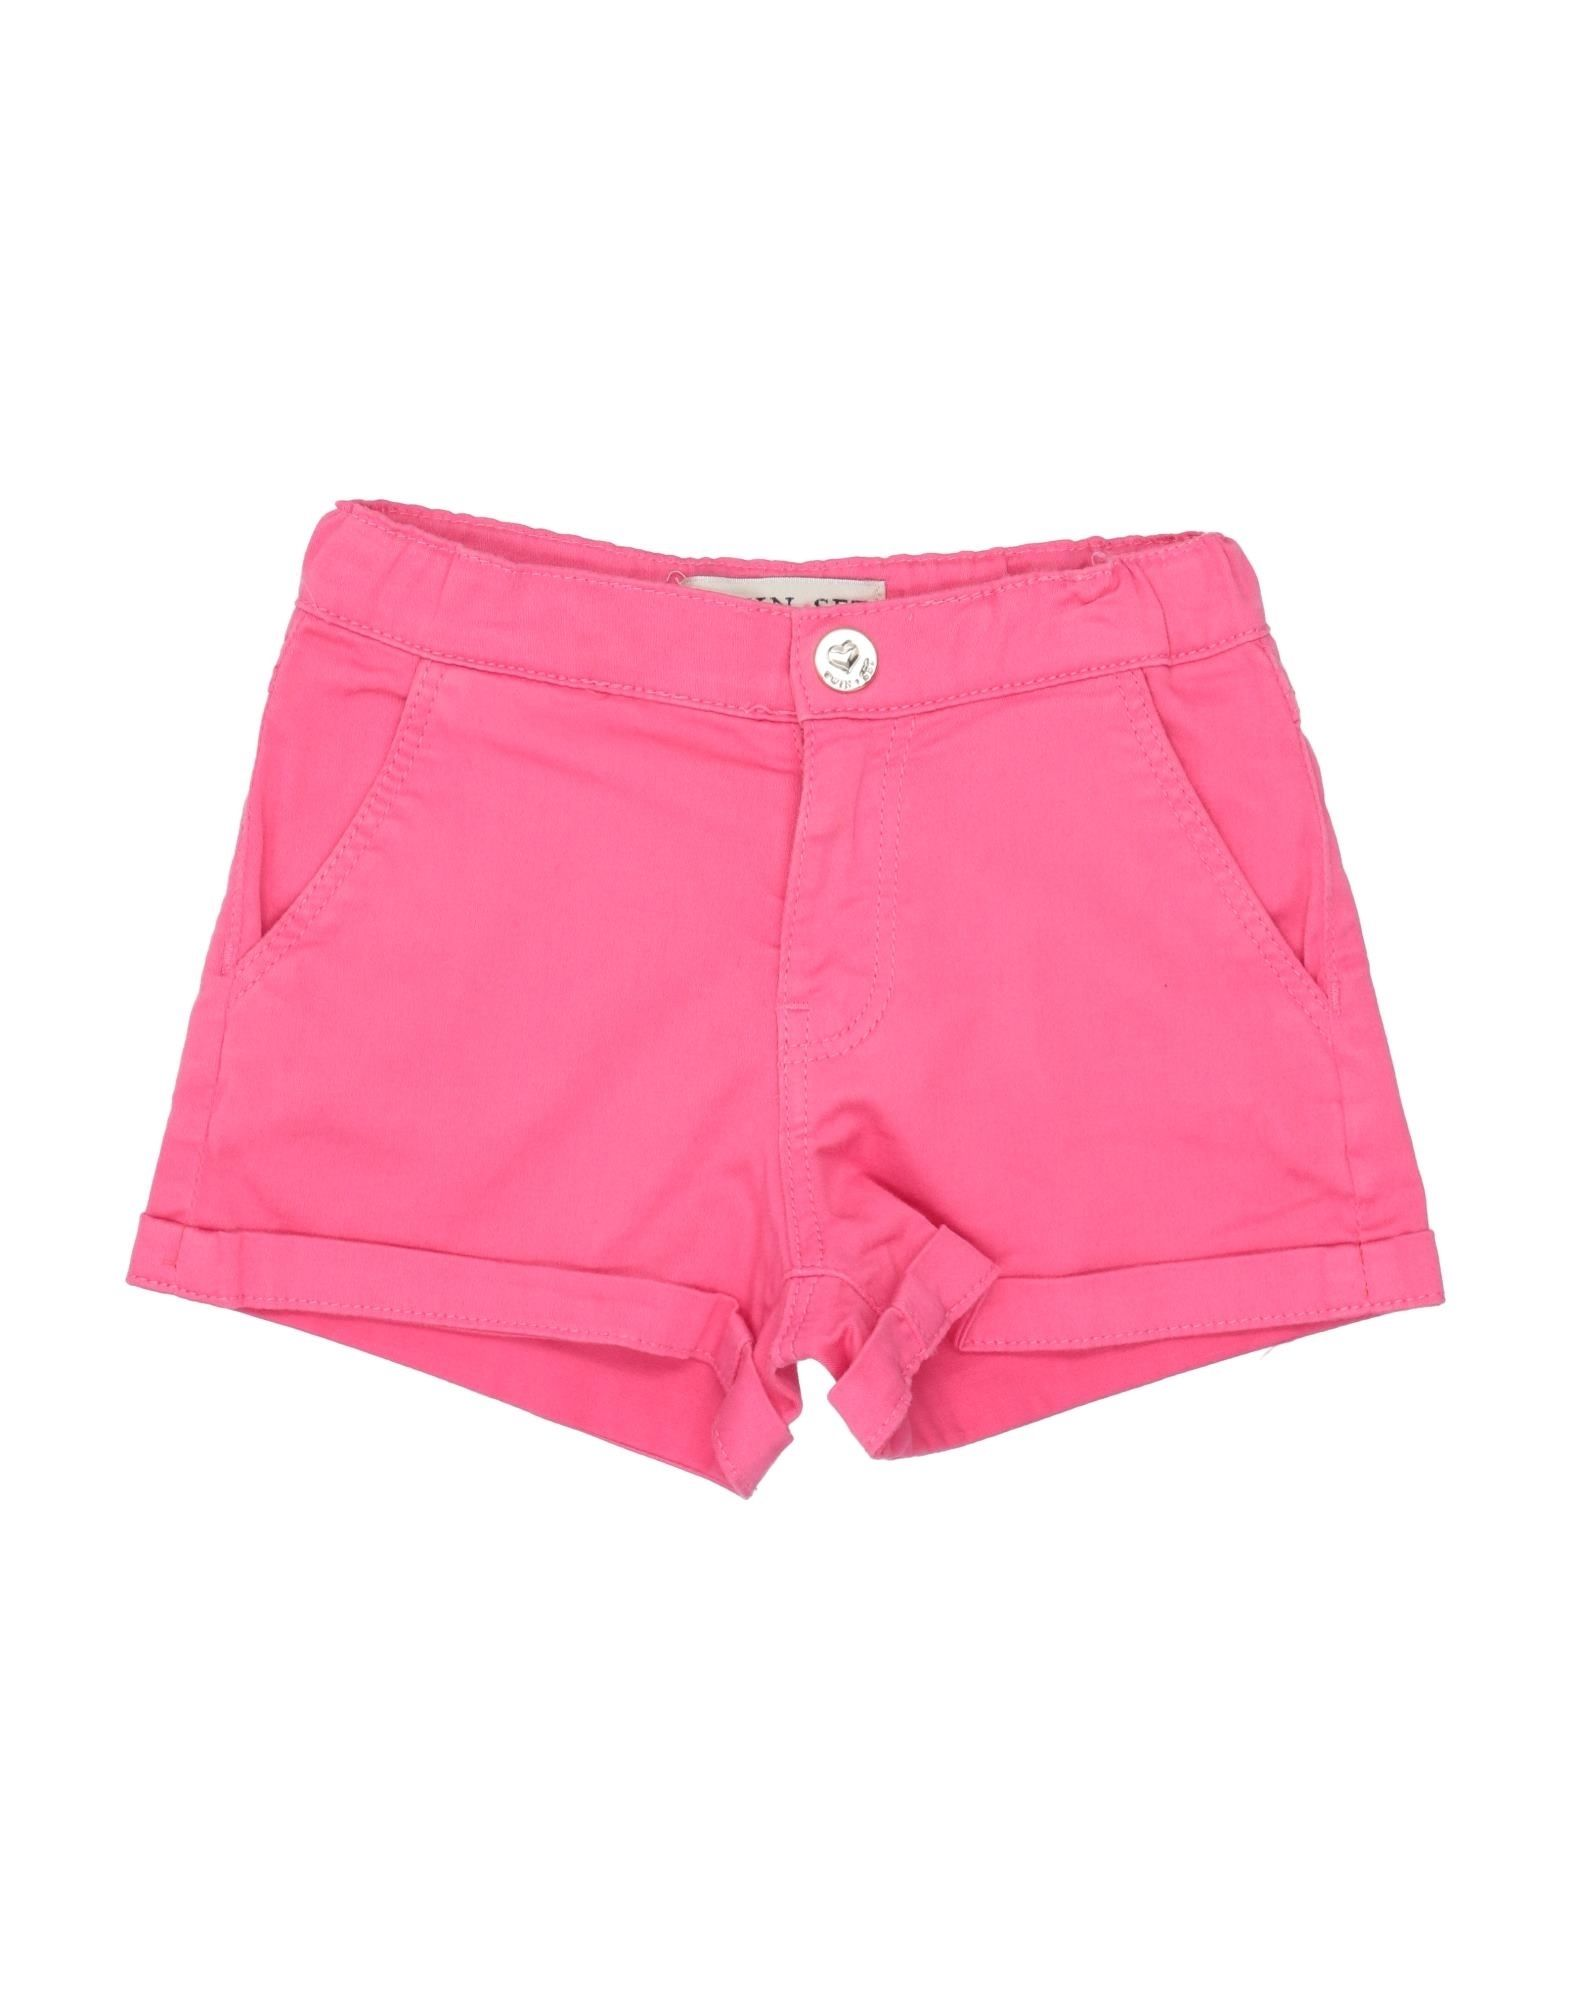 Twinset Girl Kids' Shorts In Pink